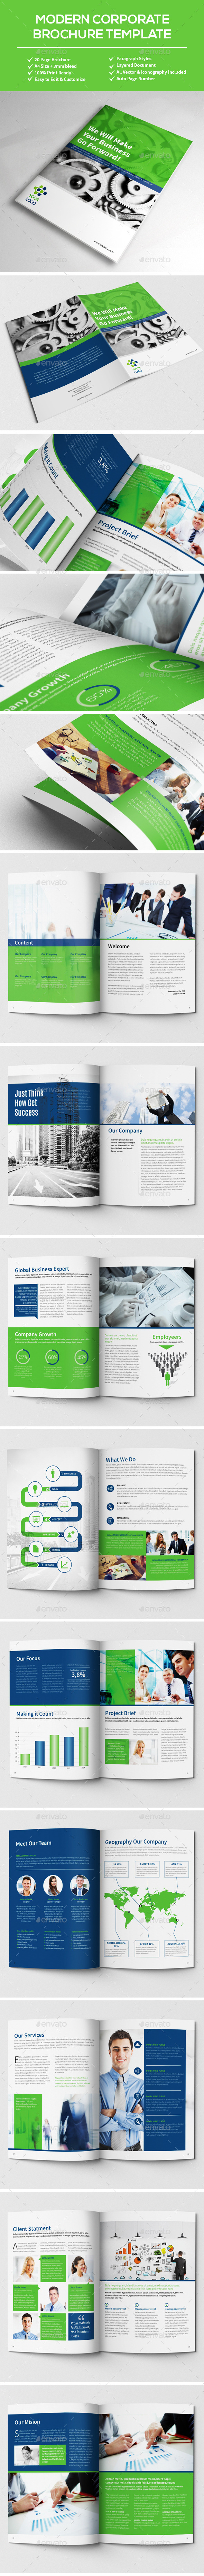 Multypurpose Corporate Brochure - Brochures Print Templates